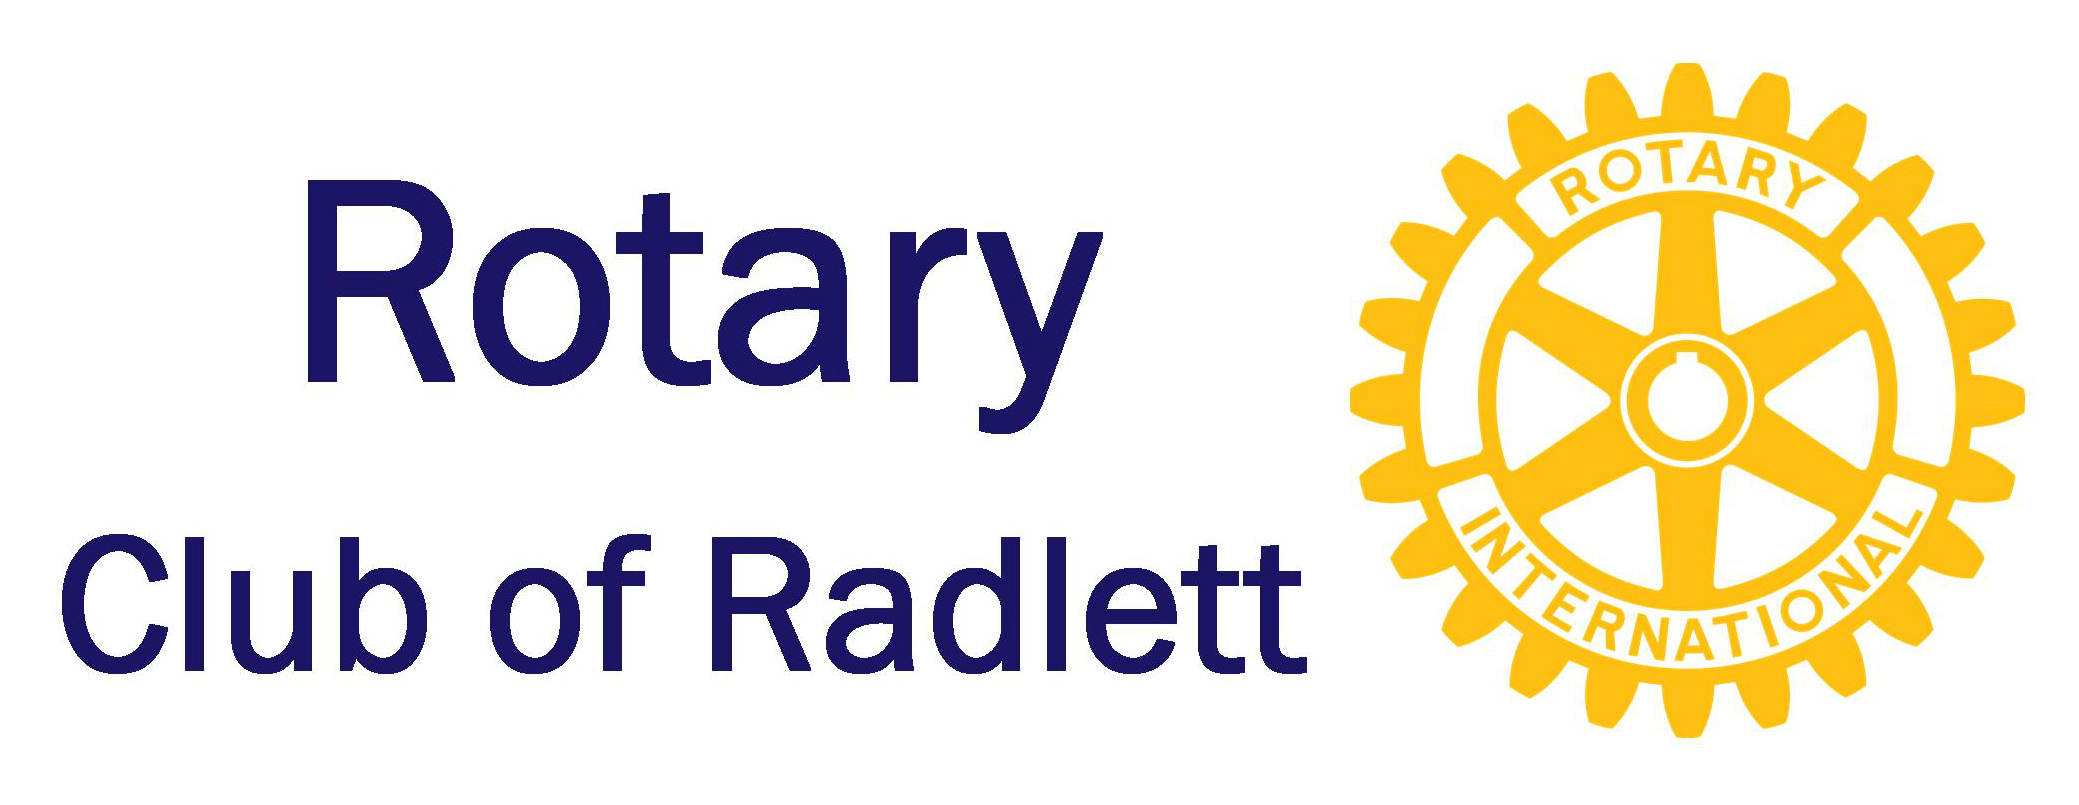 Rotary Club of Radlett